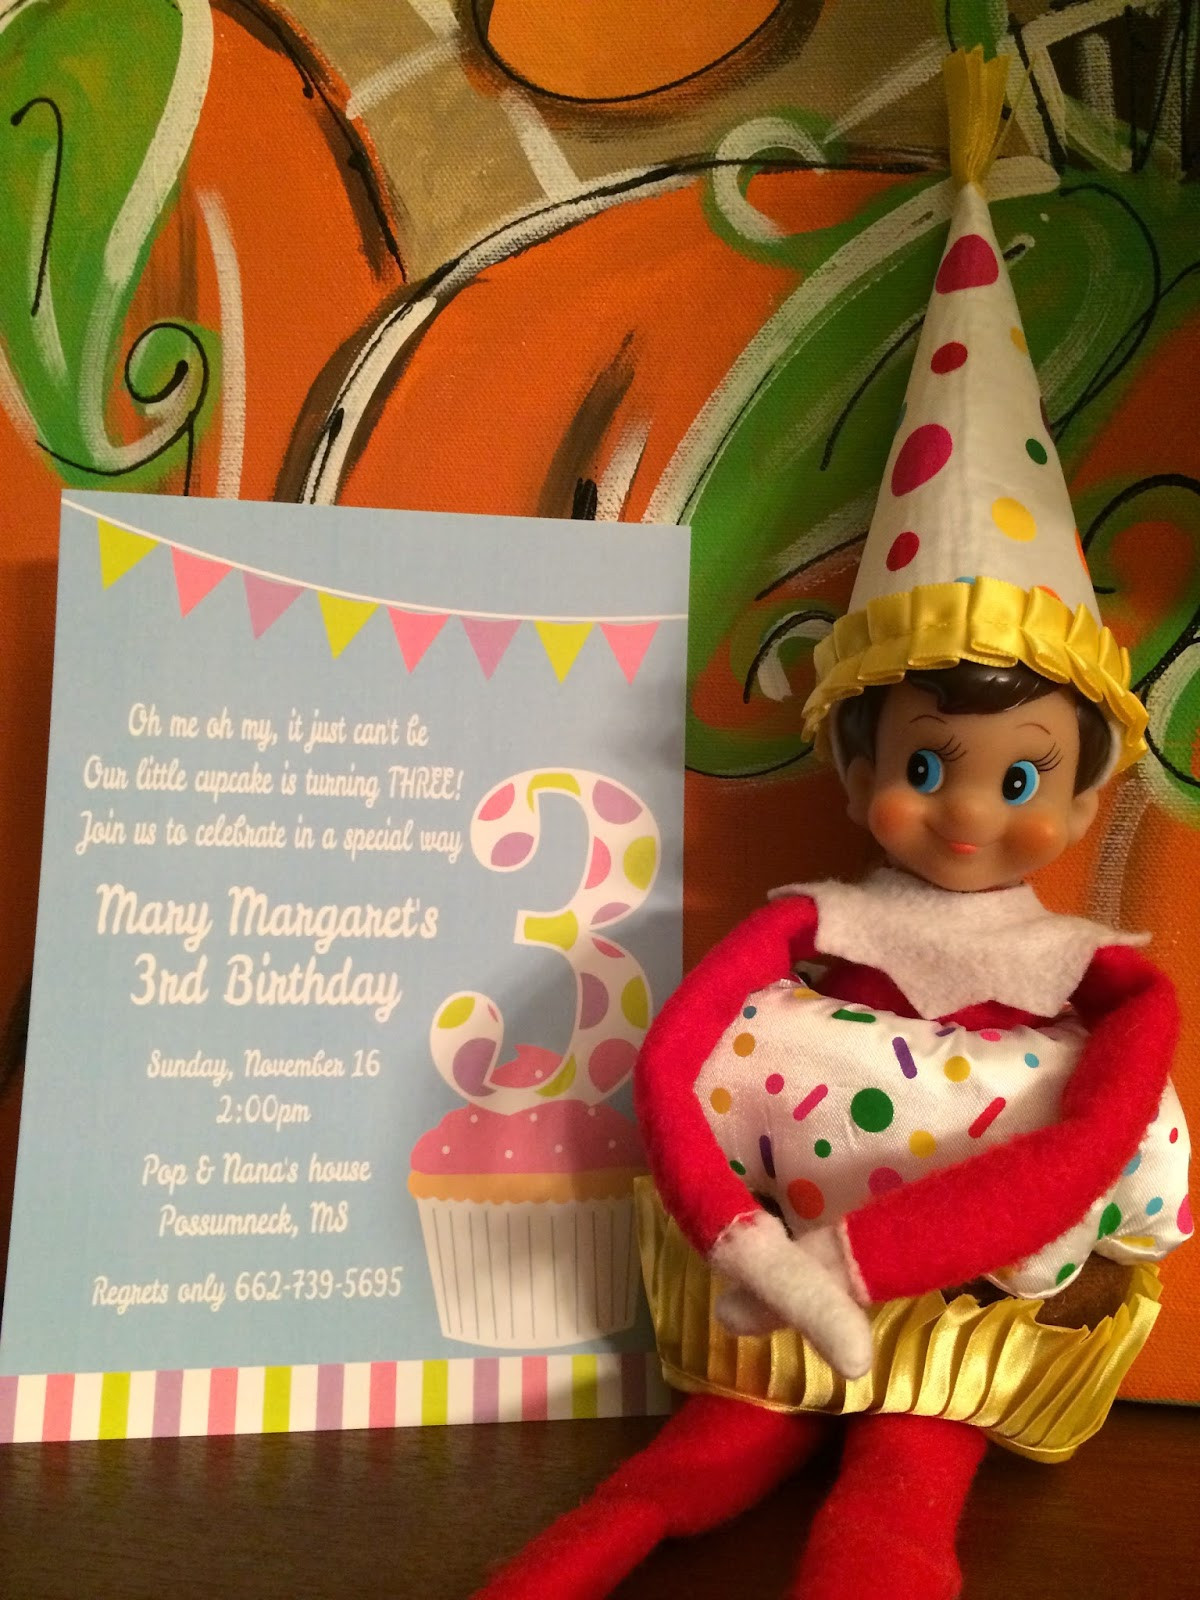 Best ideas about Happy Birthday Mary Funny . Save or Pin The Moore Family Happy Birthday Mary Margaret Now.